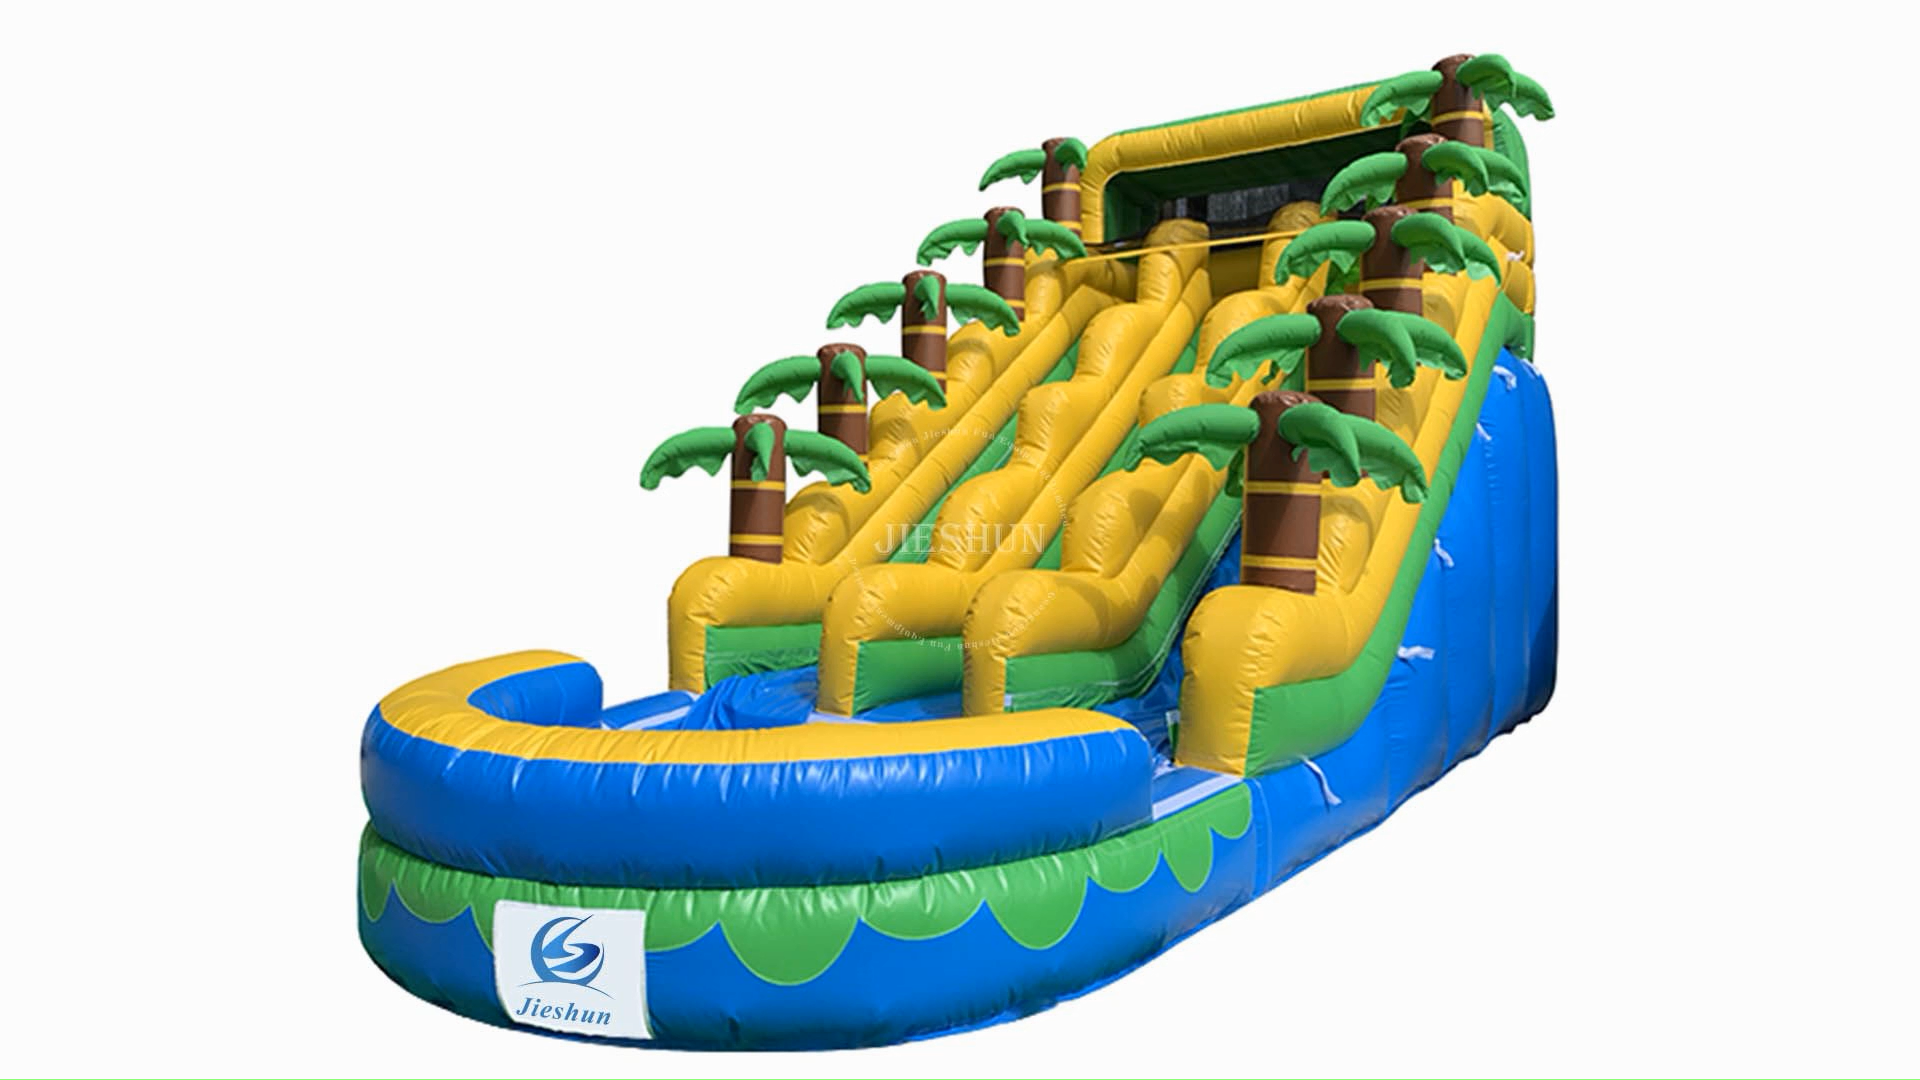 Commercial Kids Dual Lane Slip and Slide Palm Tree Theme Inflatable Water Slide with Pool Home Kids Zone Garden